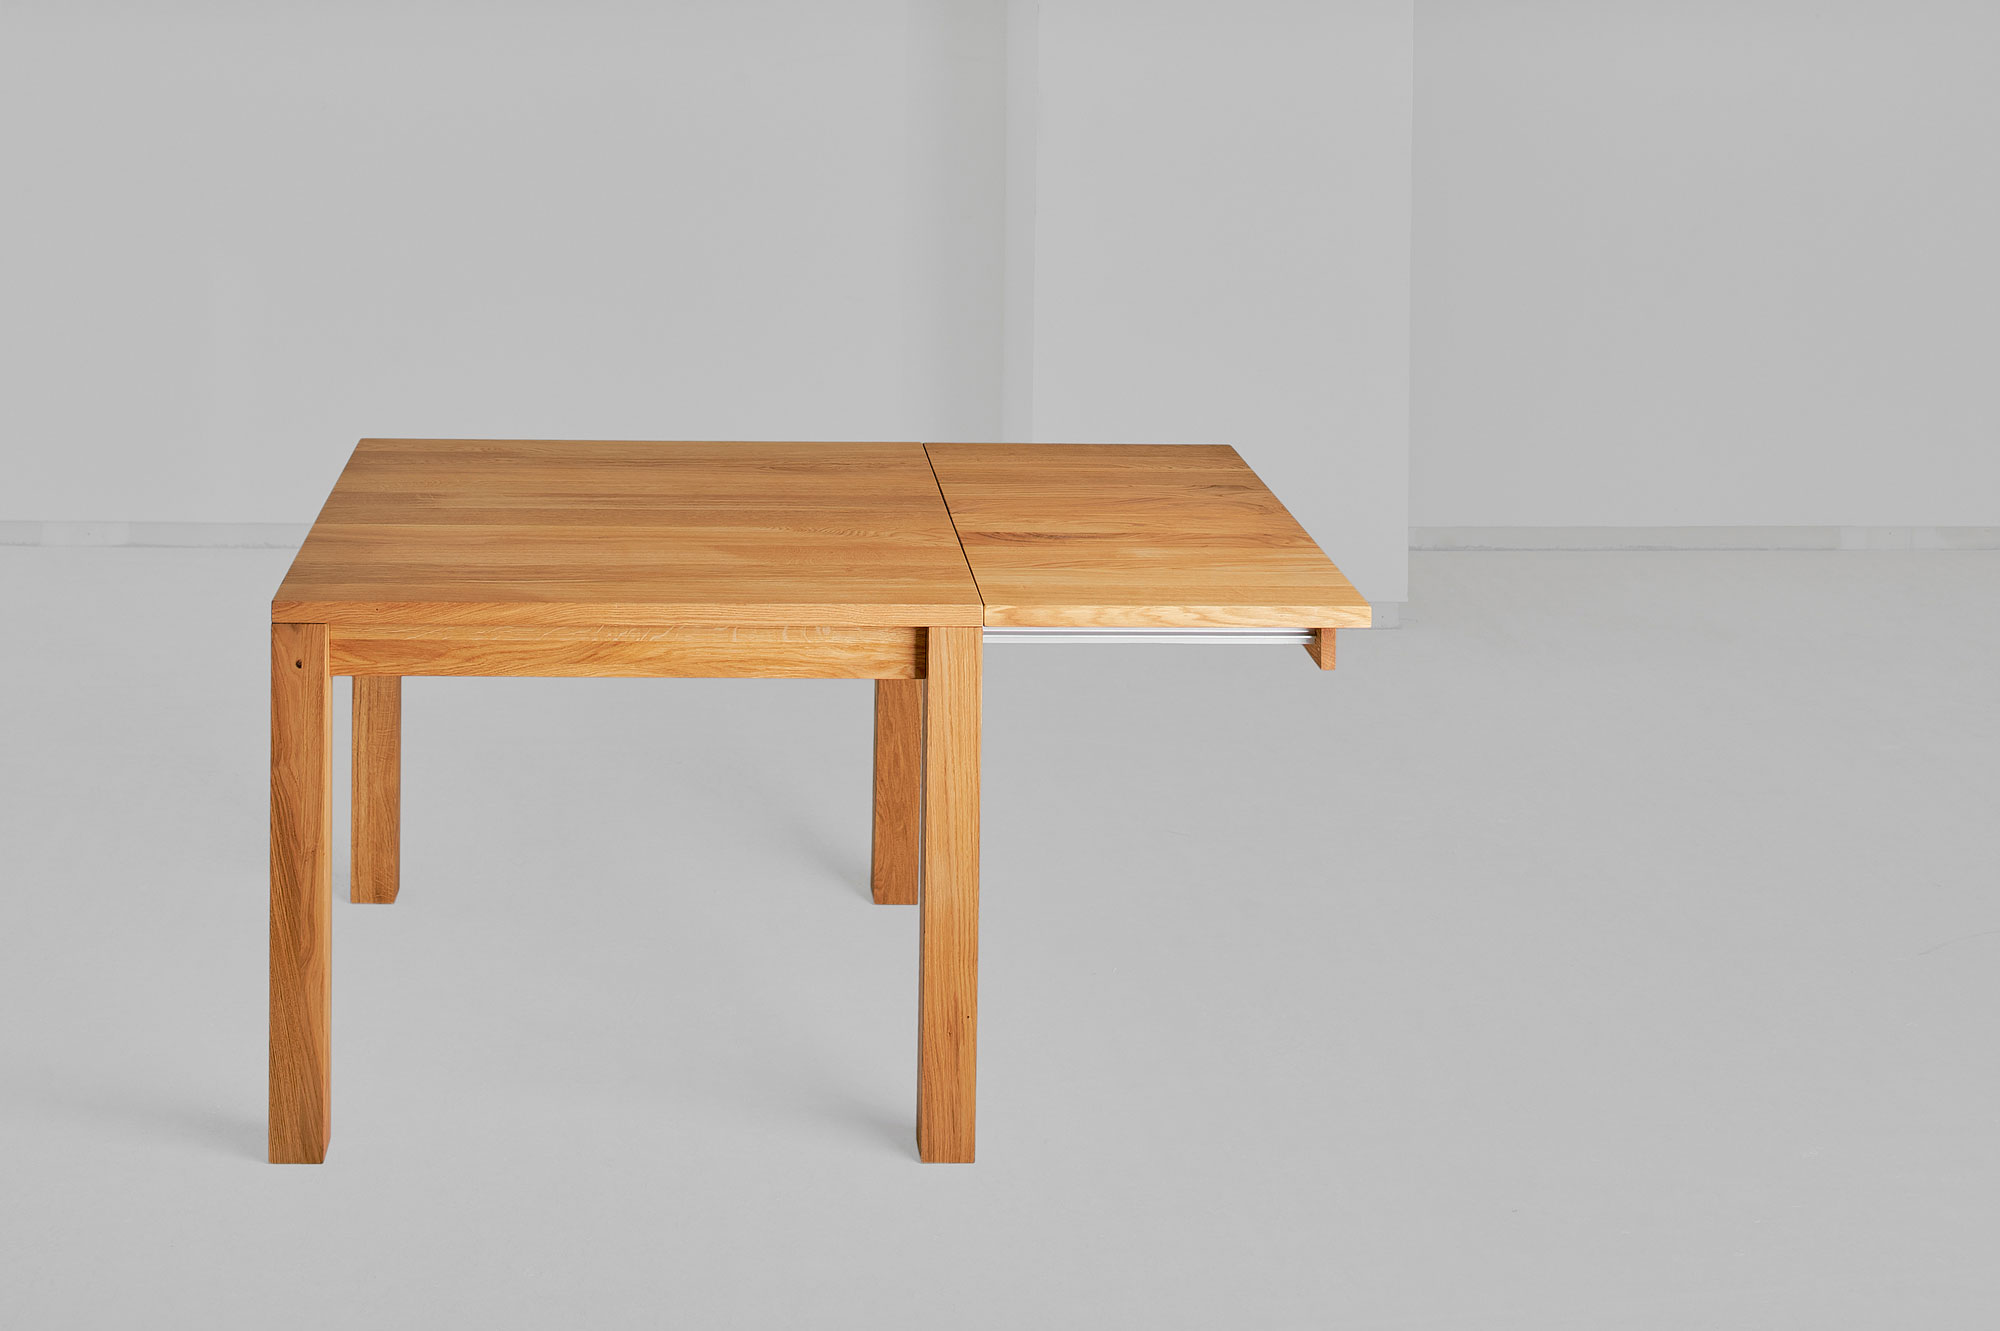 Solid Wood Dining Table CUBUS 3 B7X7 00163 custom made in solid wood by vitamin design